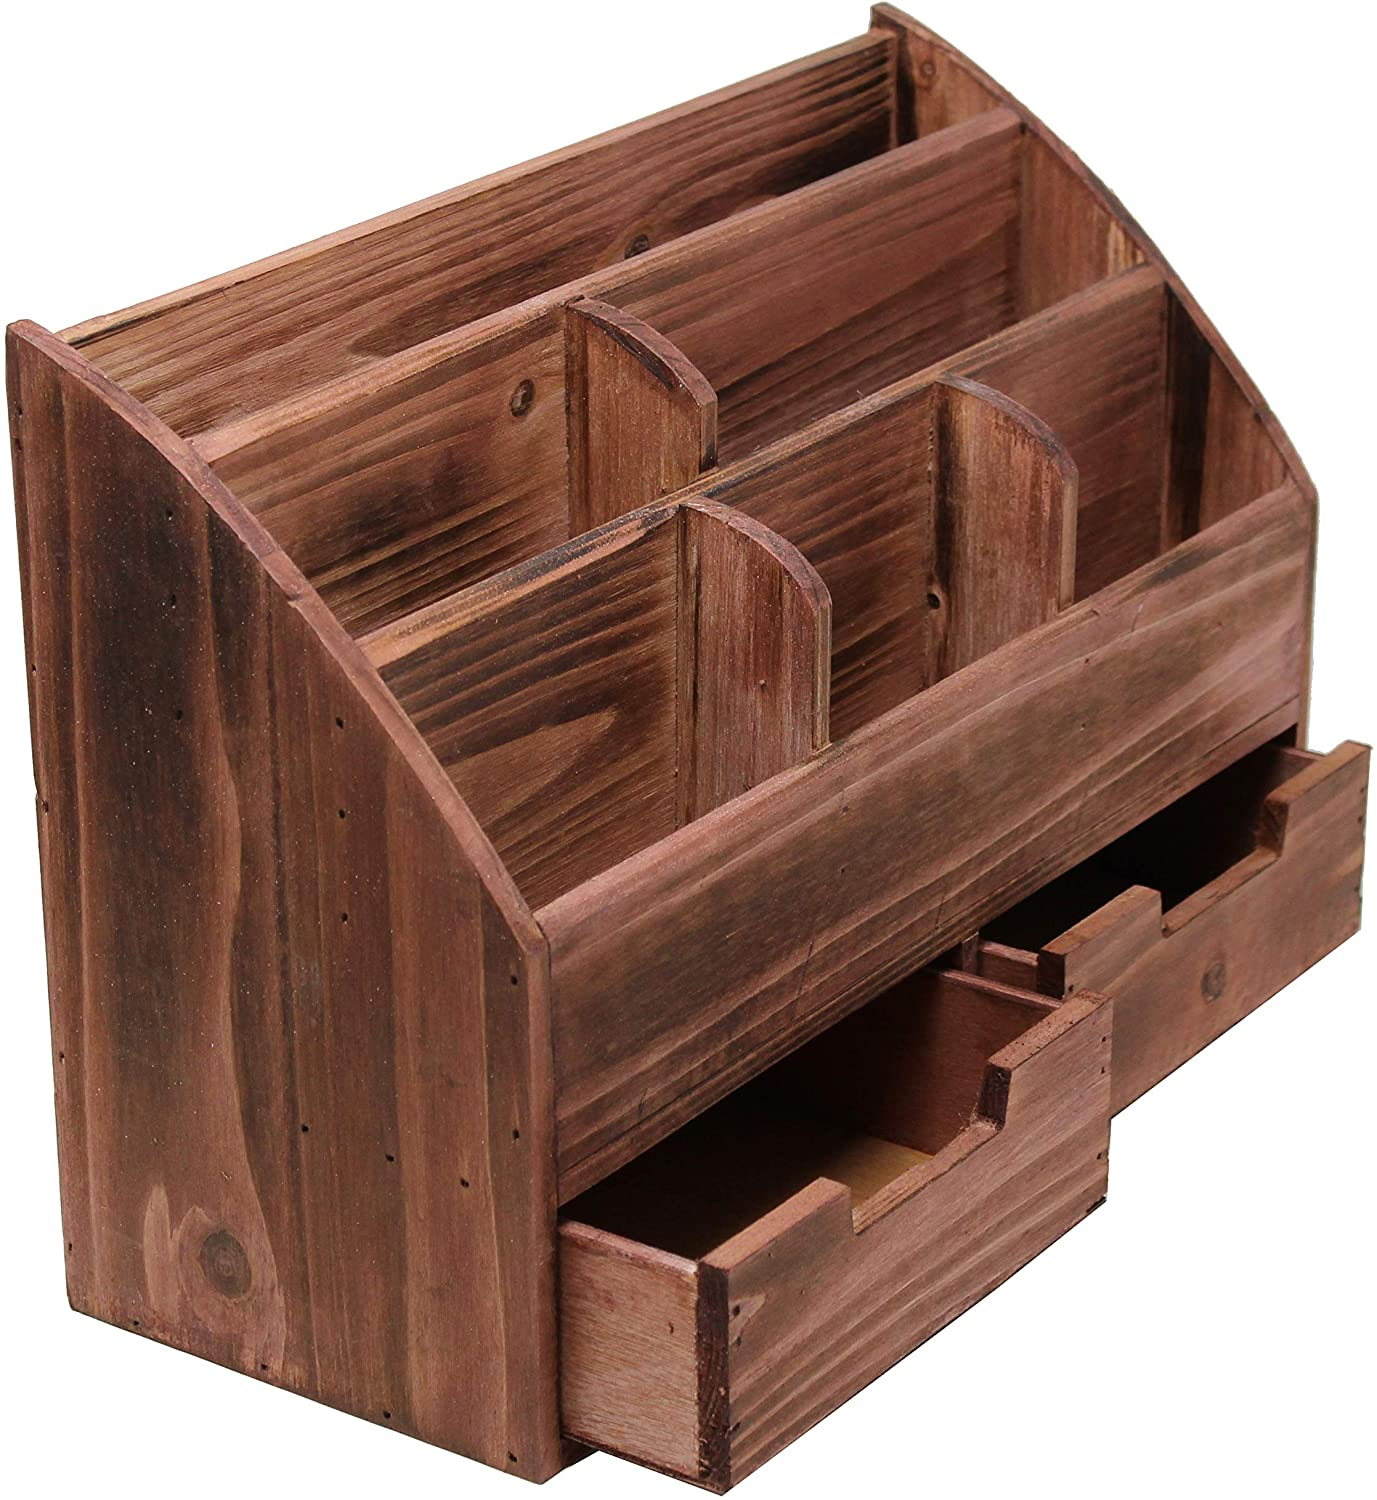 Executive Office Solutions Vintage Rustic Wooden Desk Organizer